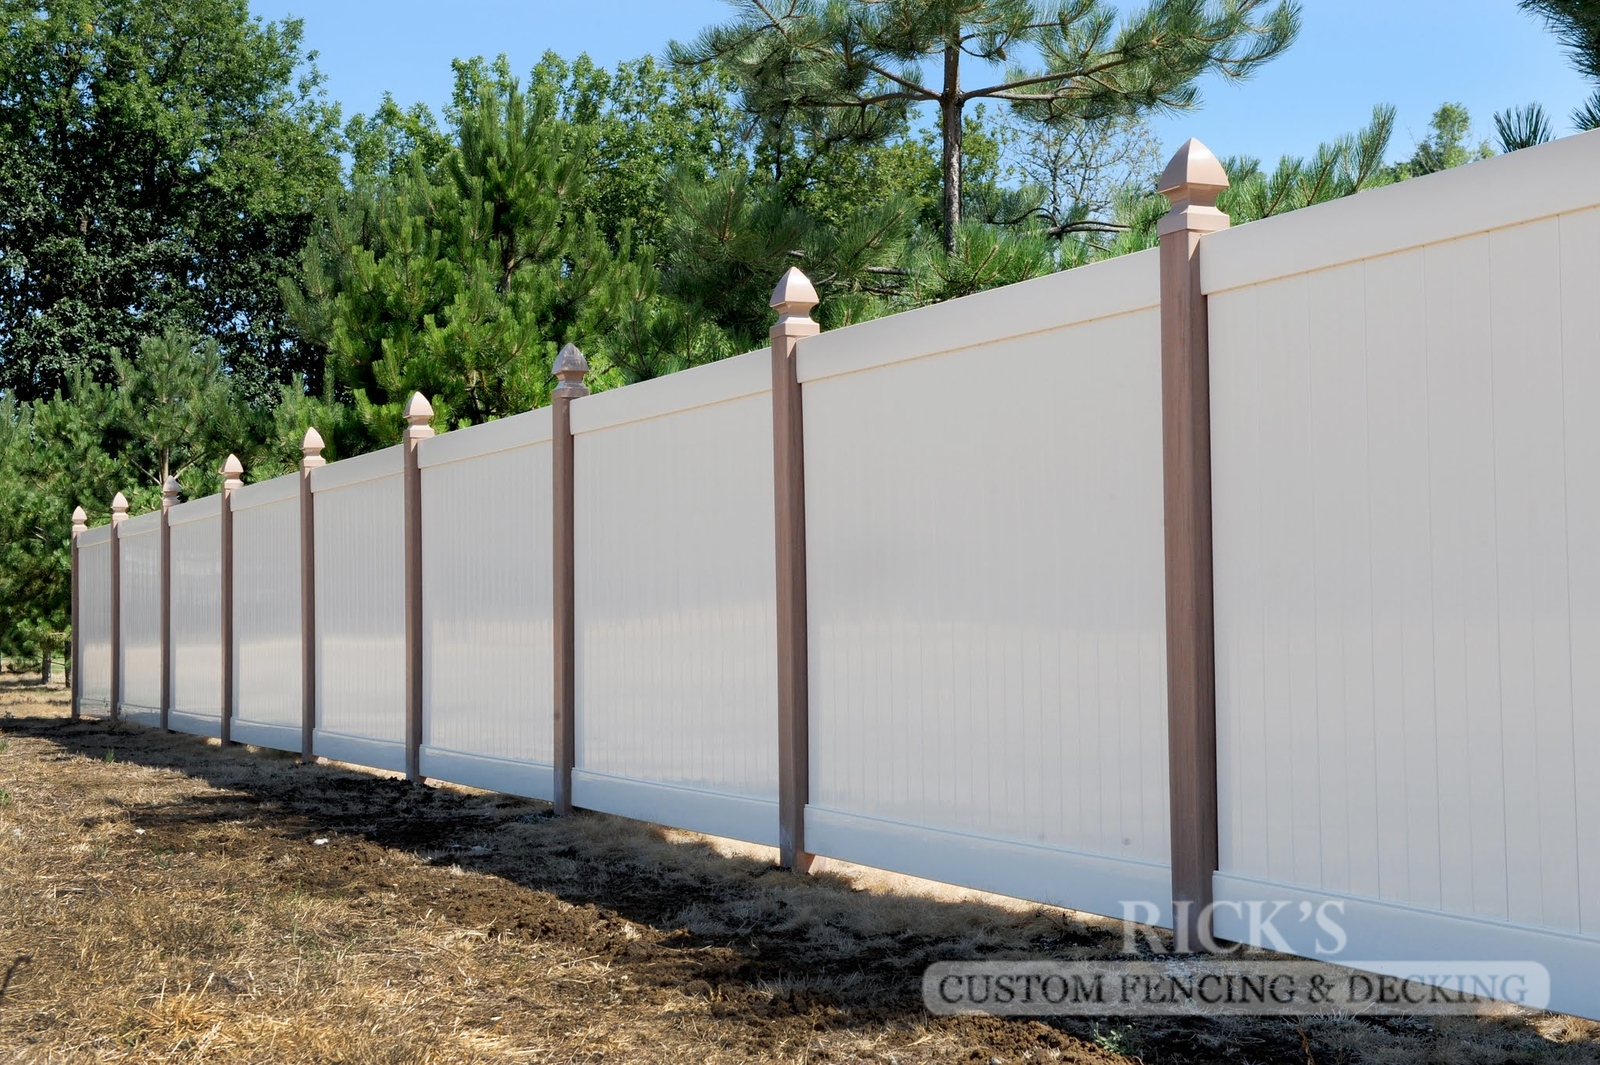 3007 - Vinyl Privacy Fencing